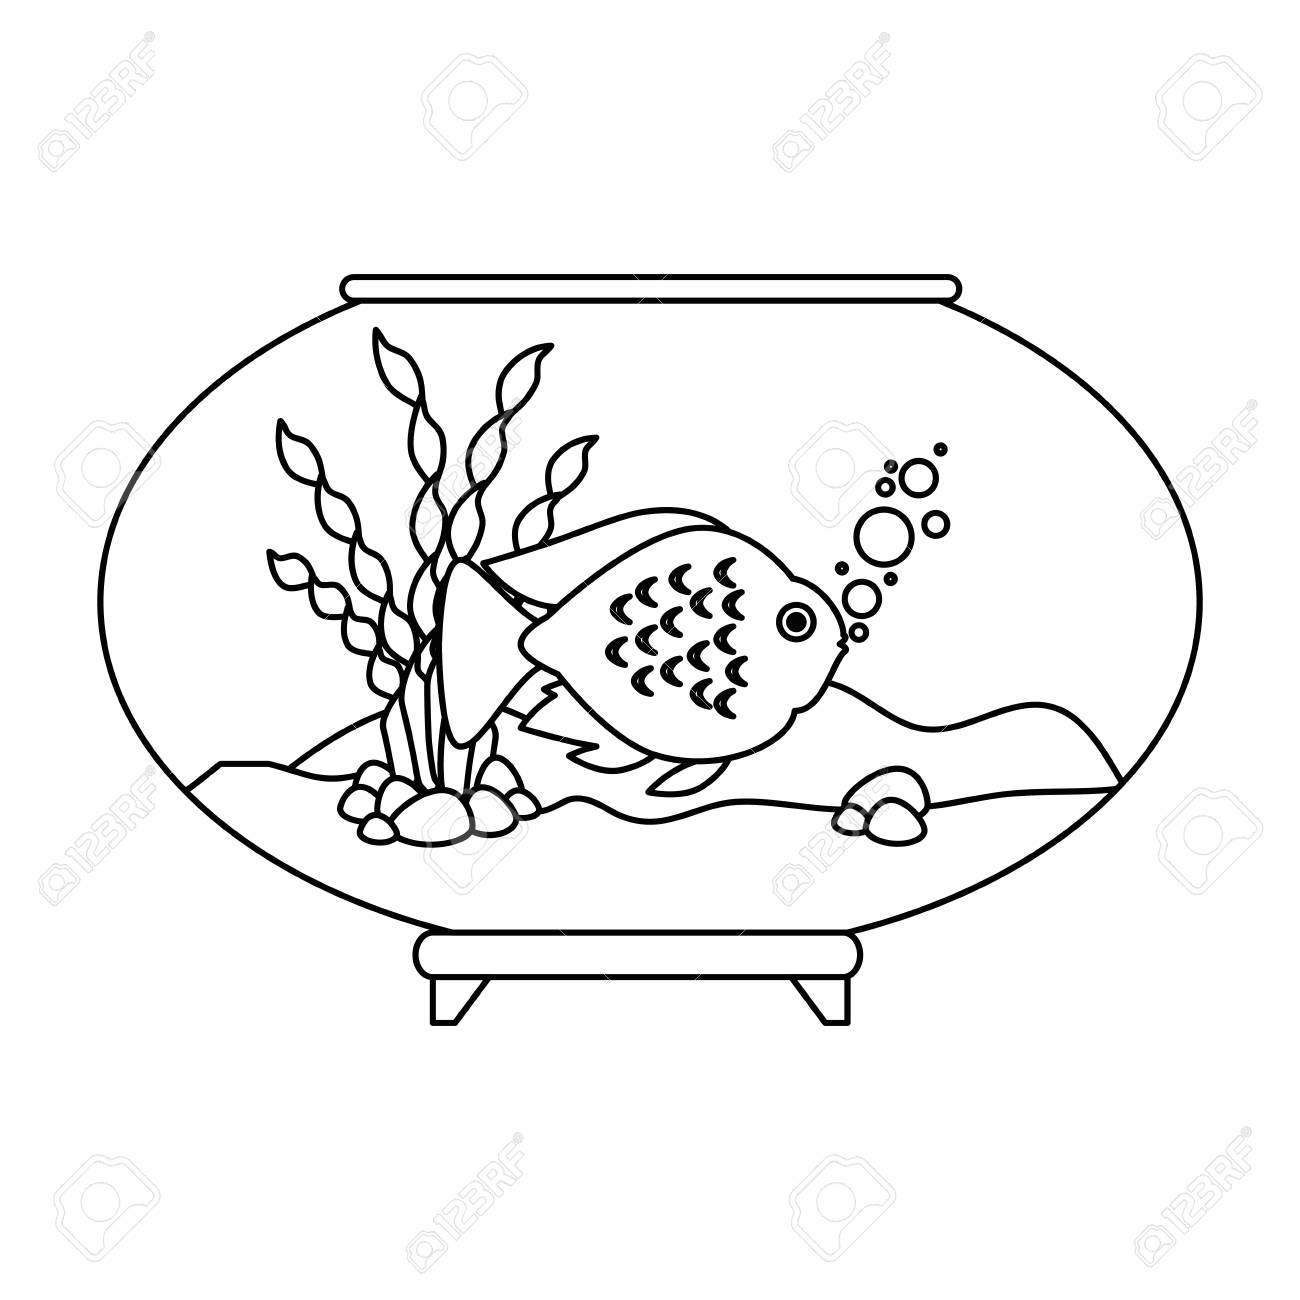 Aquarium Bowl With Outline Fish Vector Illustration Design Royalty Free Cliparts Vectors And Stock Illustration Image 99887363